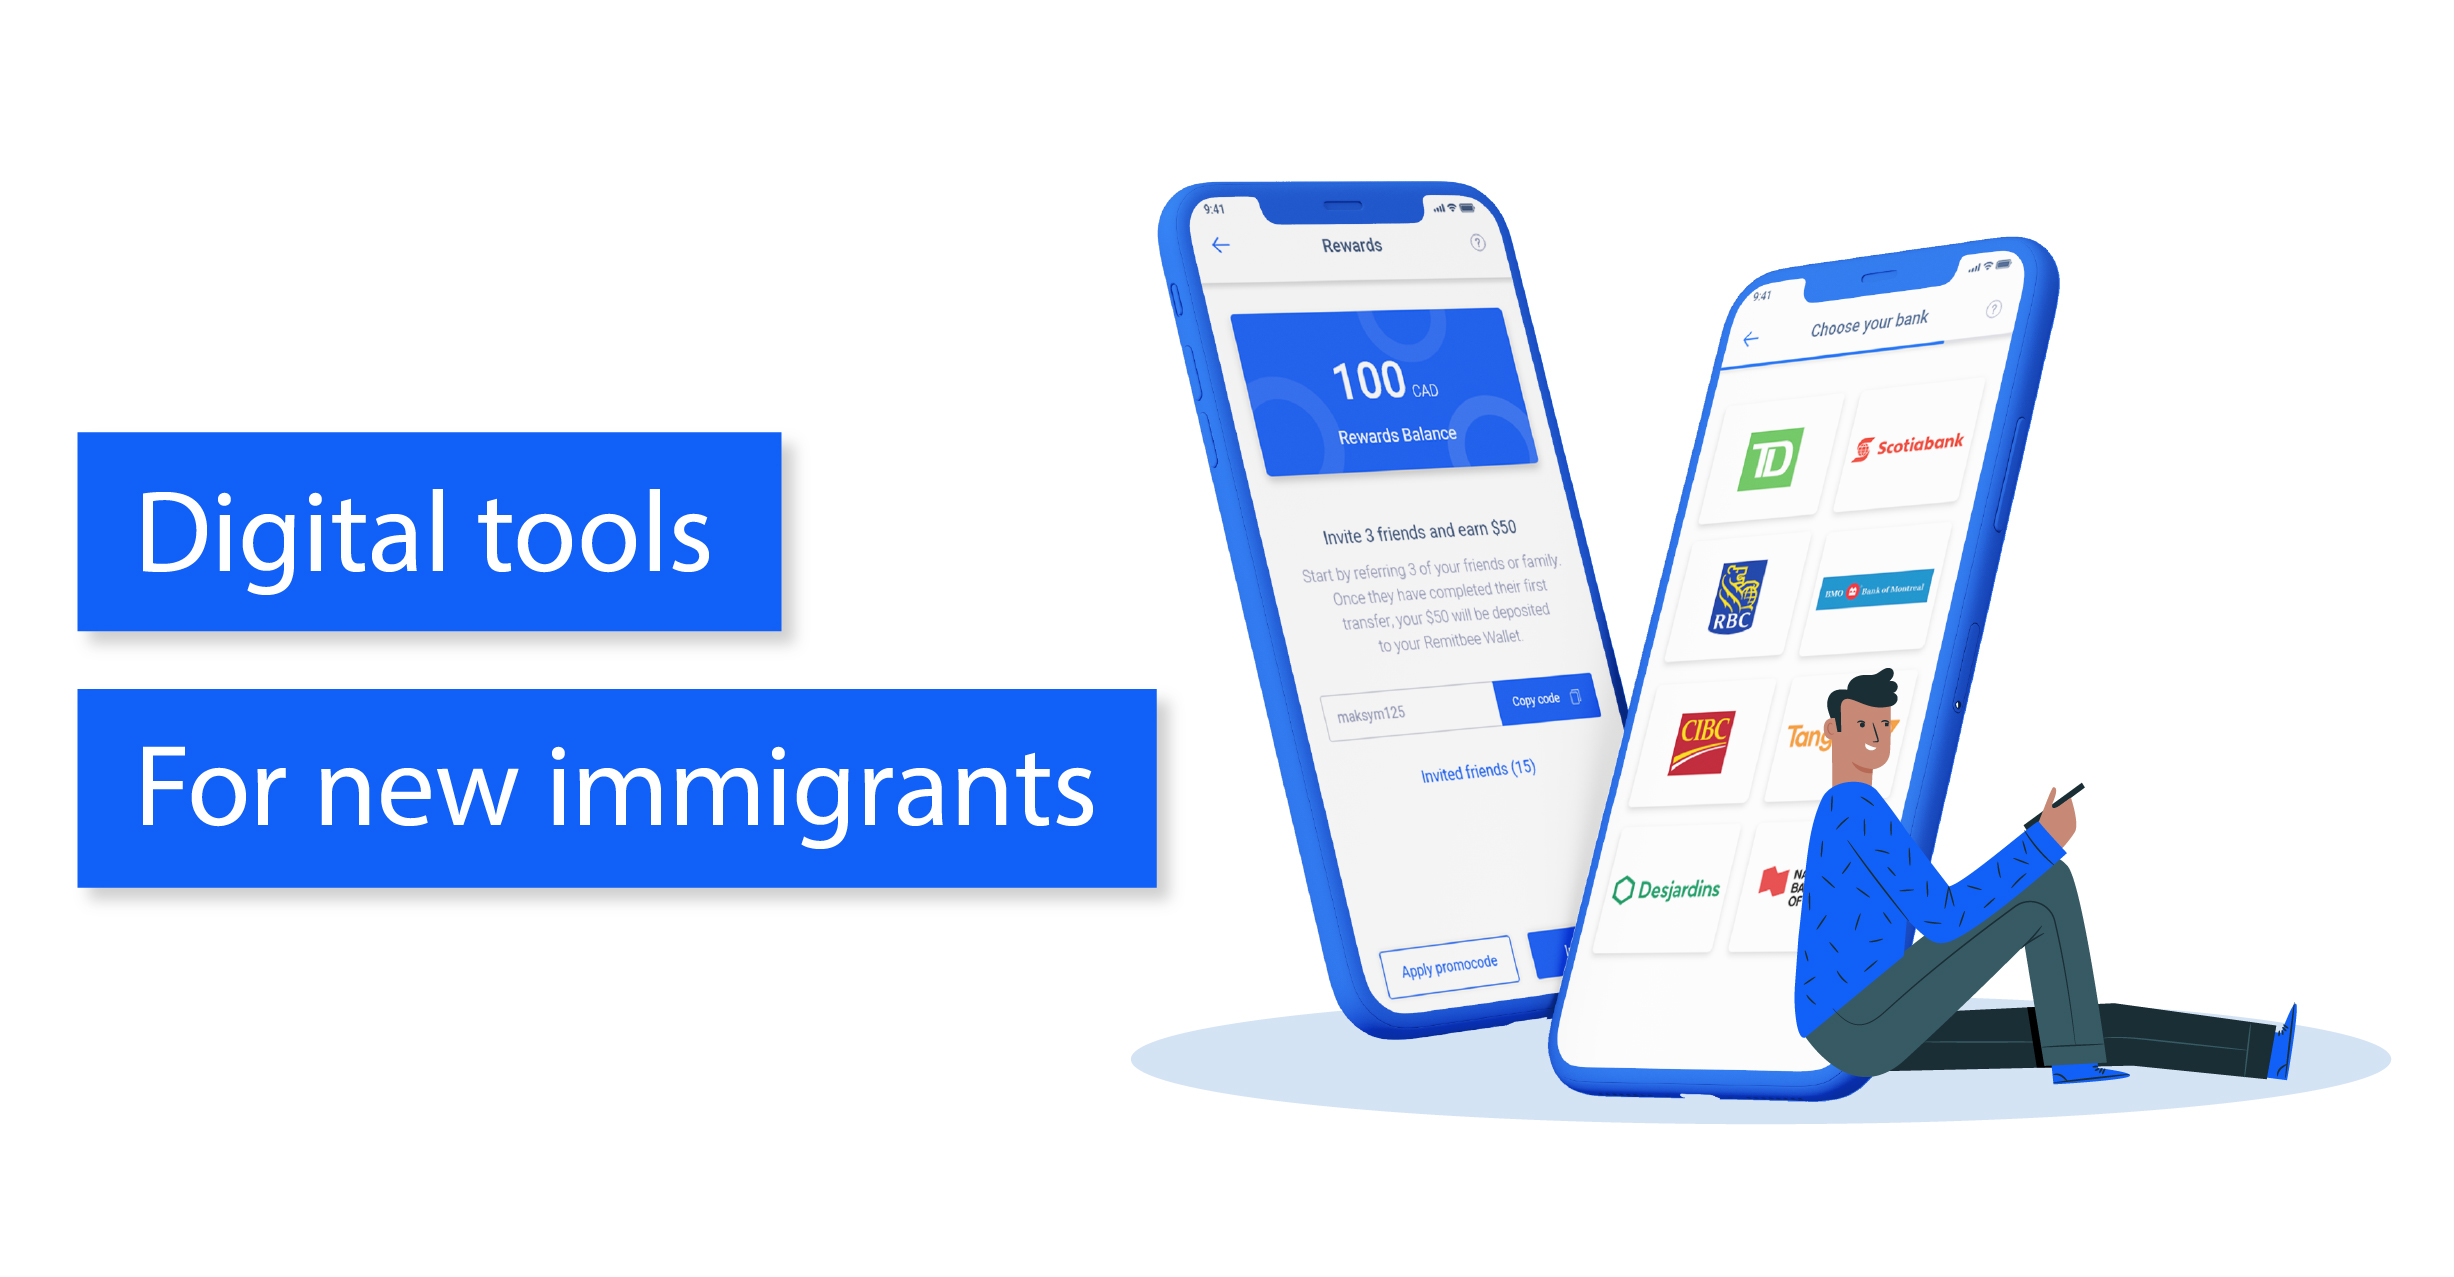 Digital Sources, Tools & Apps To Help Immigrants Settle In Canada